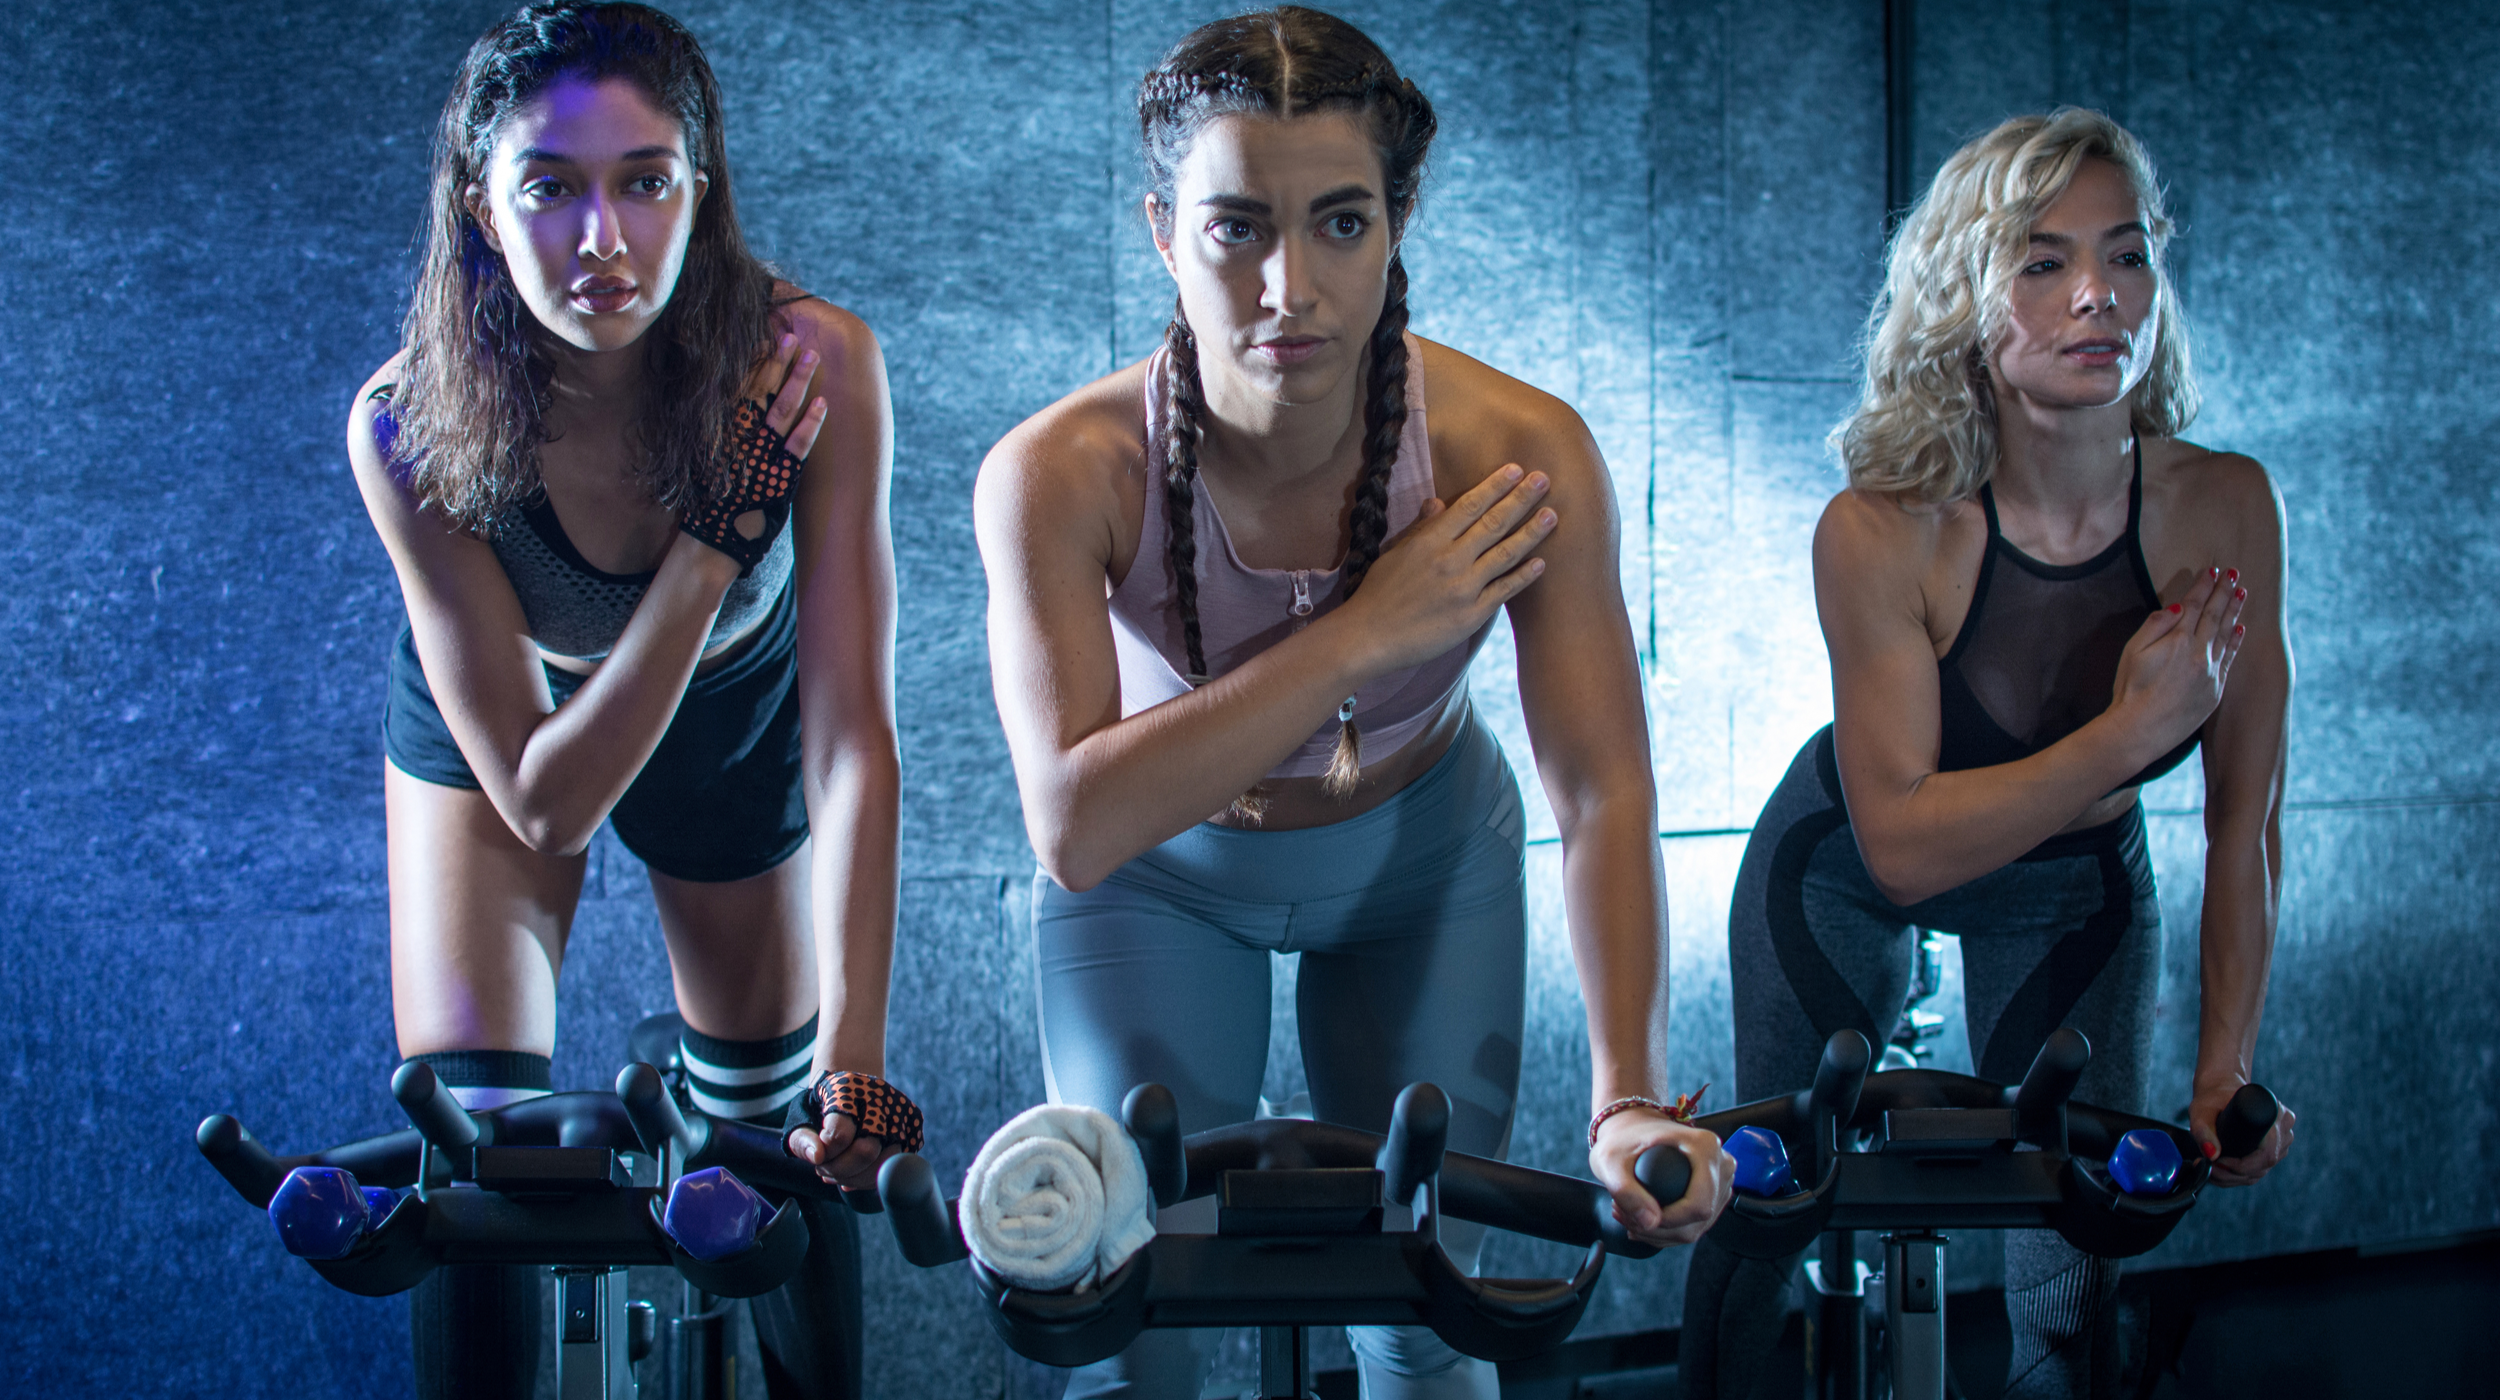 Are Spin Classes Effective for Fat Loss?